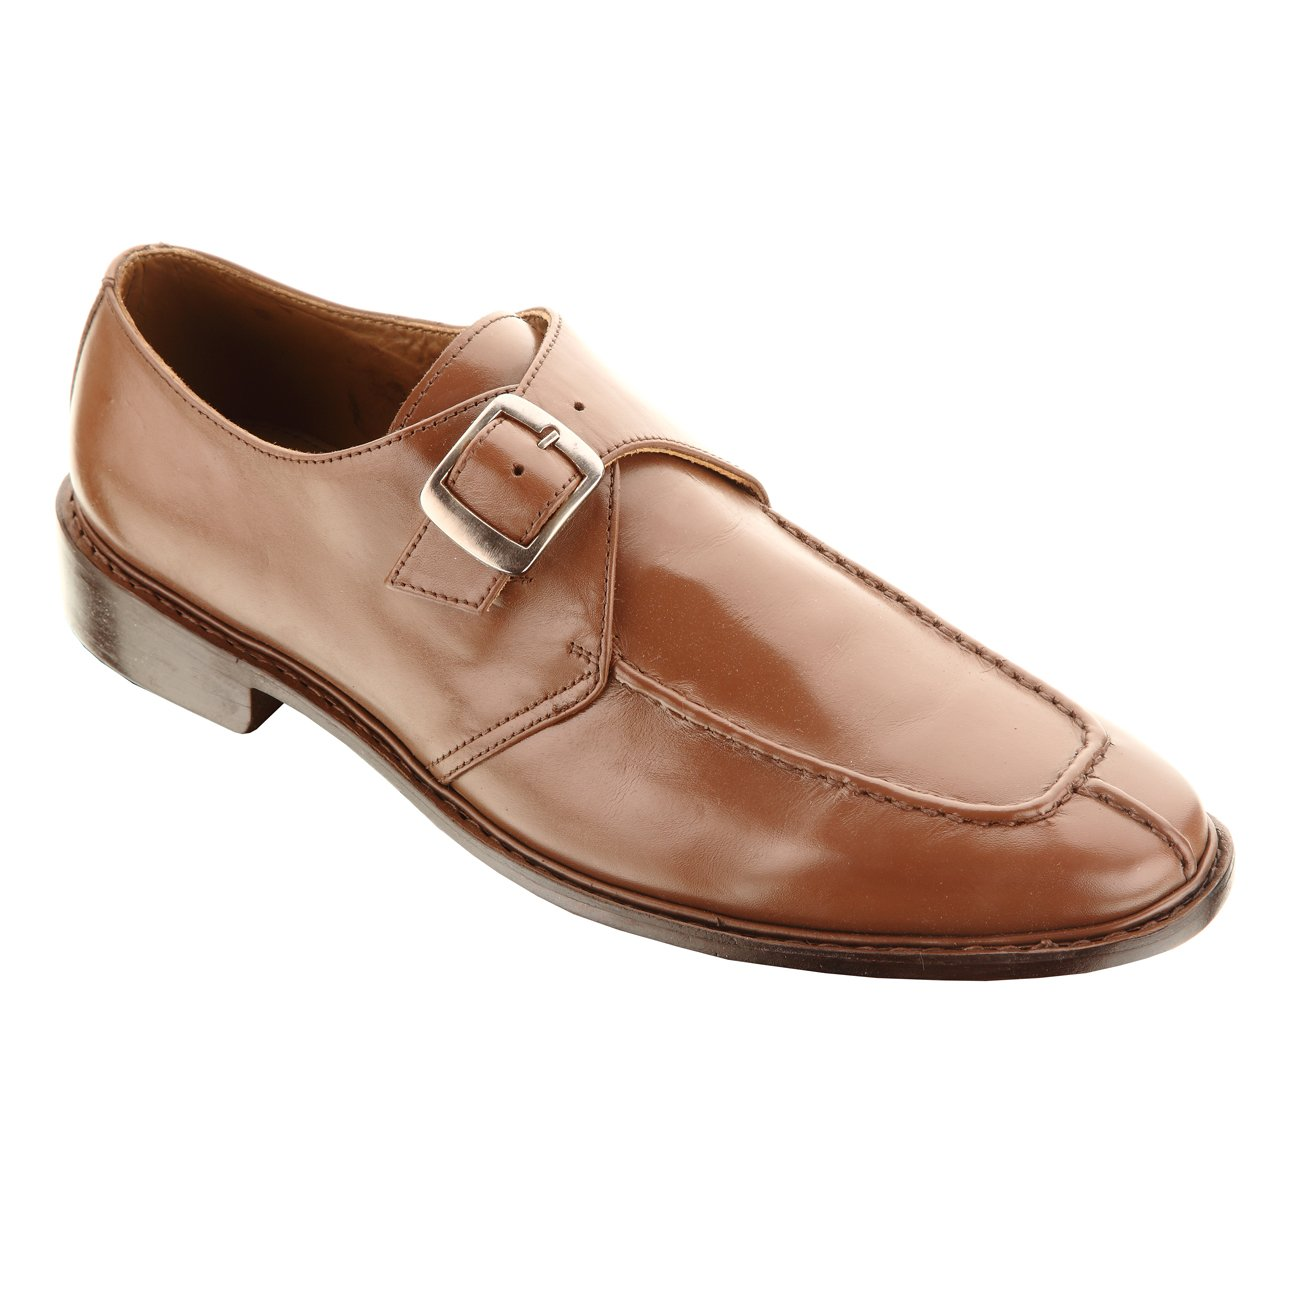 Handmade Damen Frost Alonti Mens Leather Dress Shoes with Single-buckle Strap, Color Brown, Size US11